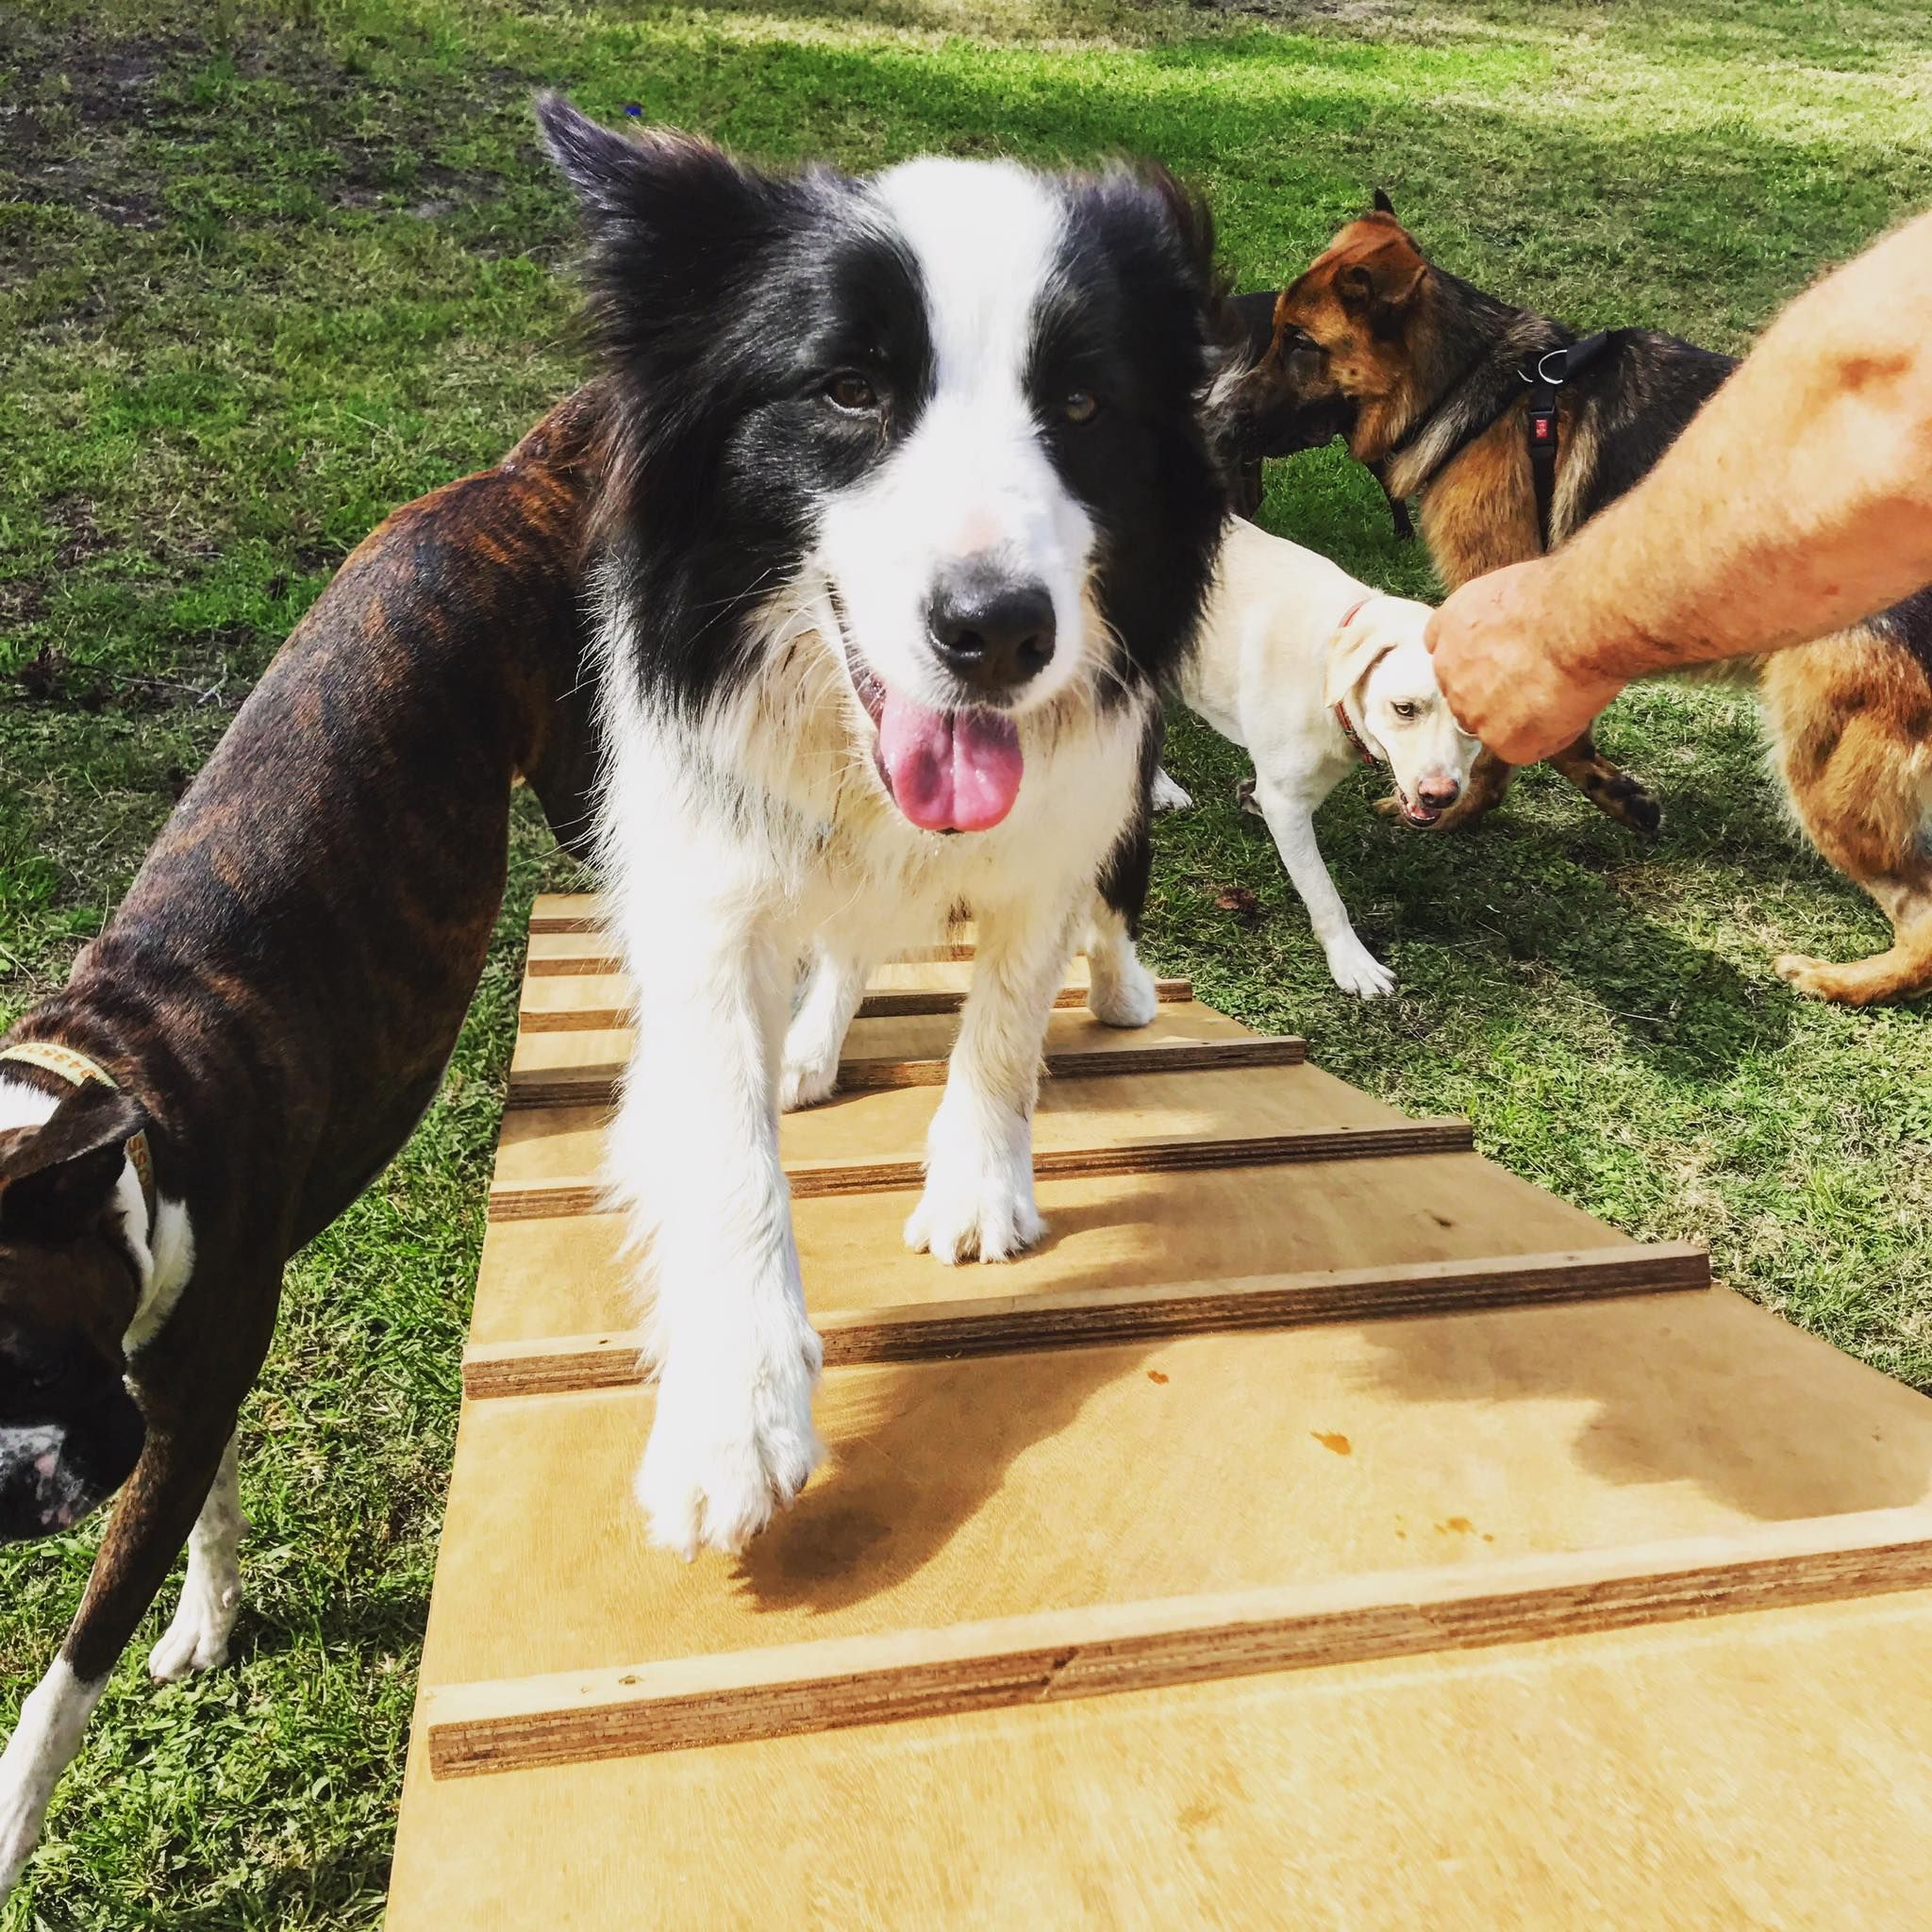 Mac (Border Collie) walking confidently up the balance beam at the Doggy Playground at the Farm